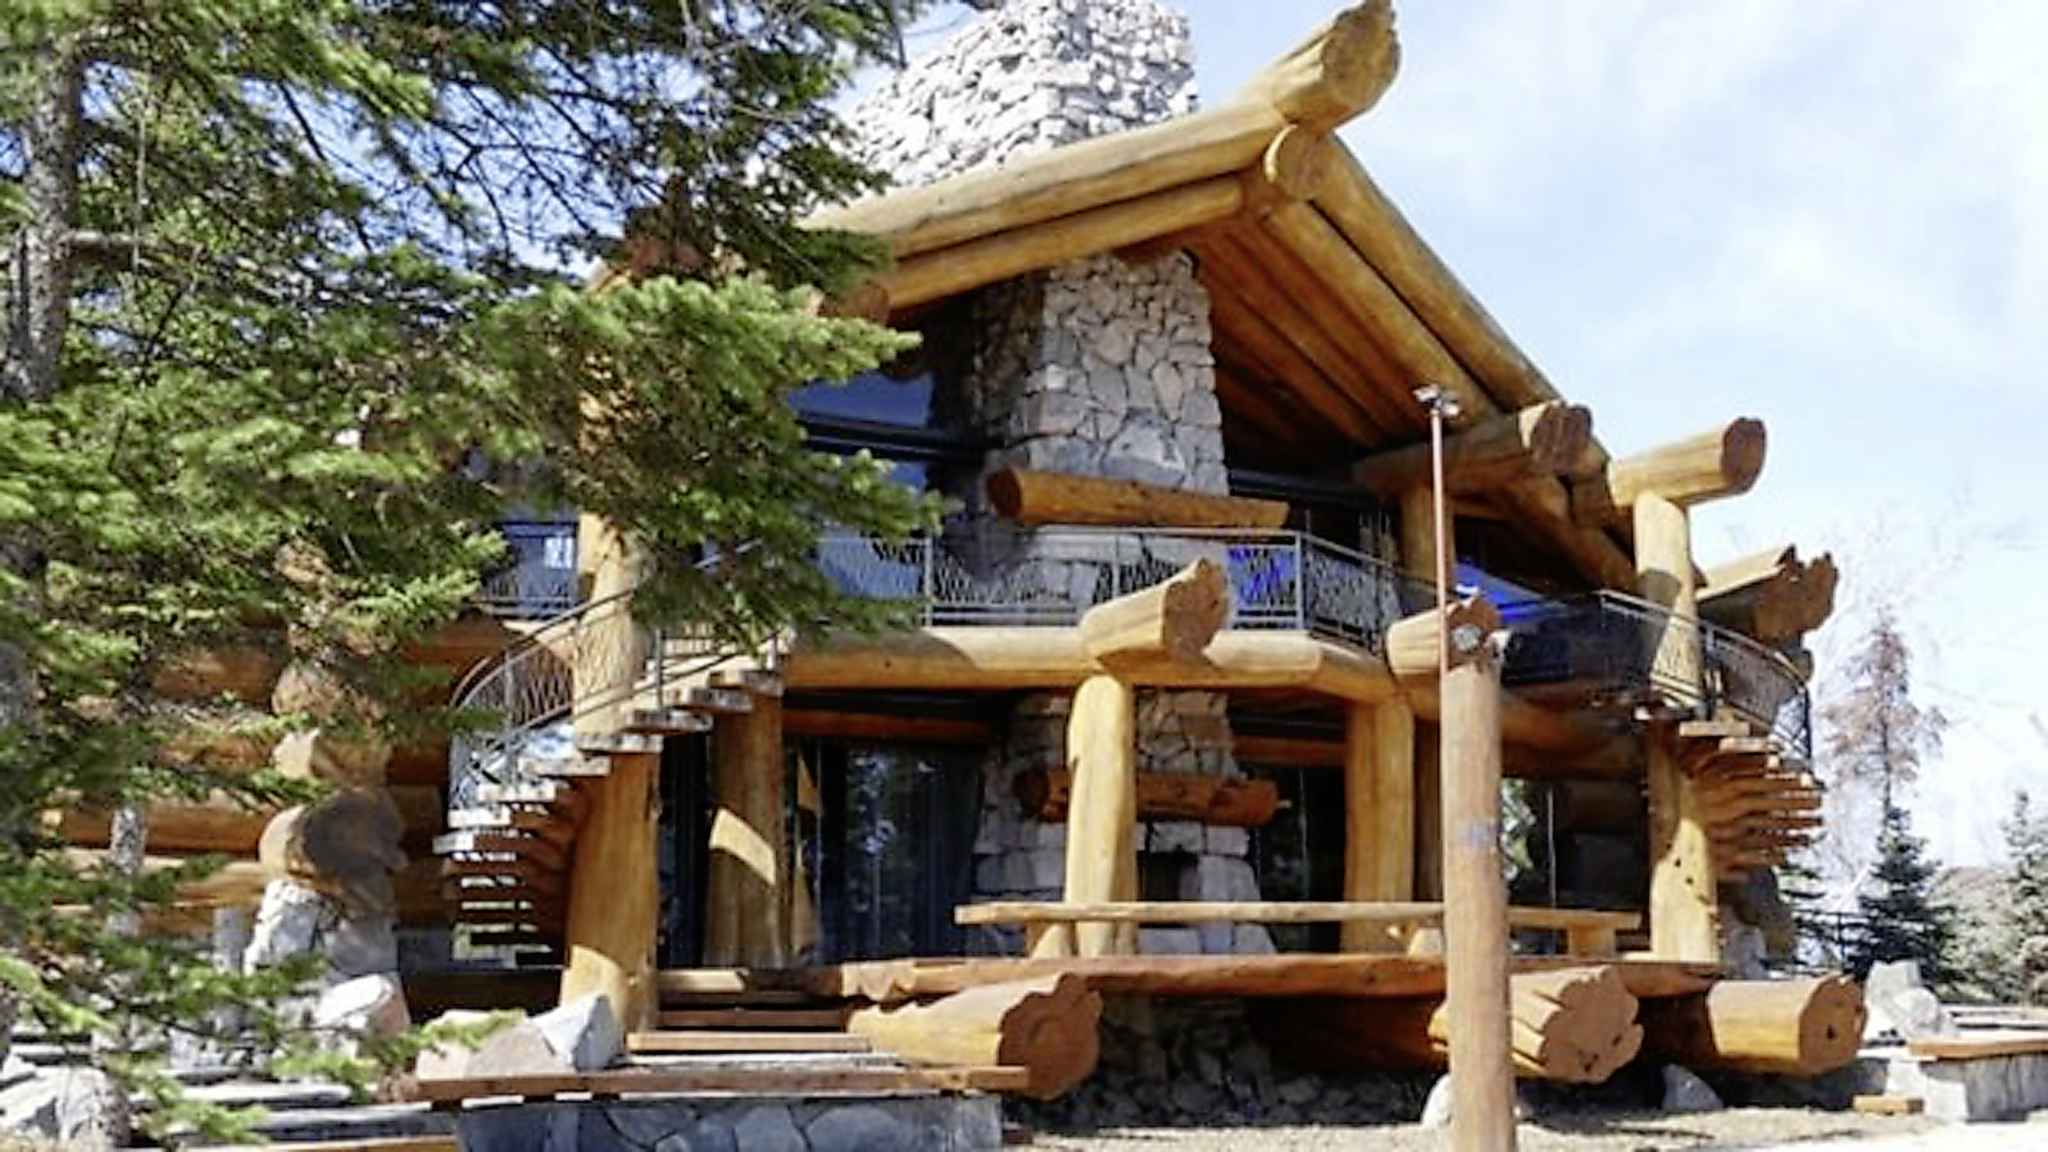 Peter Nygard's properties at Falcon Lake have been sold. CBC News is told the buyer is a young software developer who knows Nygard through poker tournaments. The sale price is not known. (Travis Golby / CBC News)